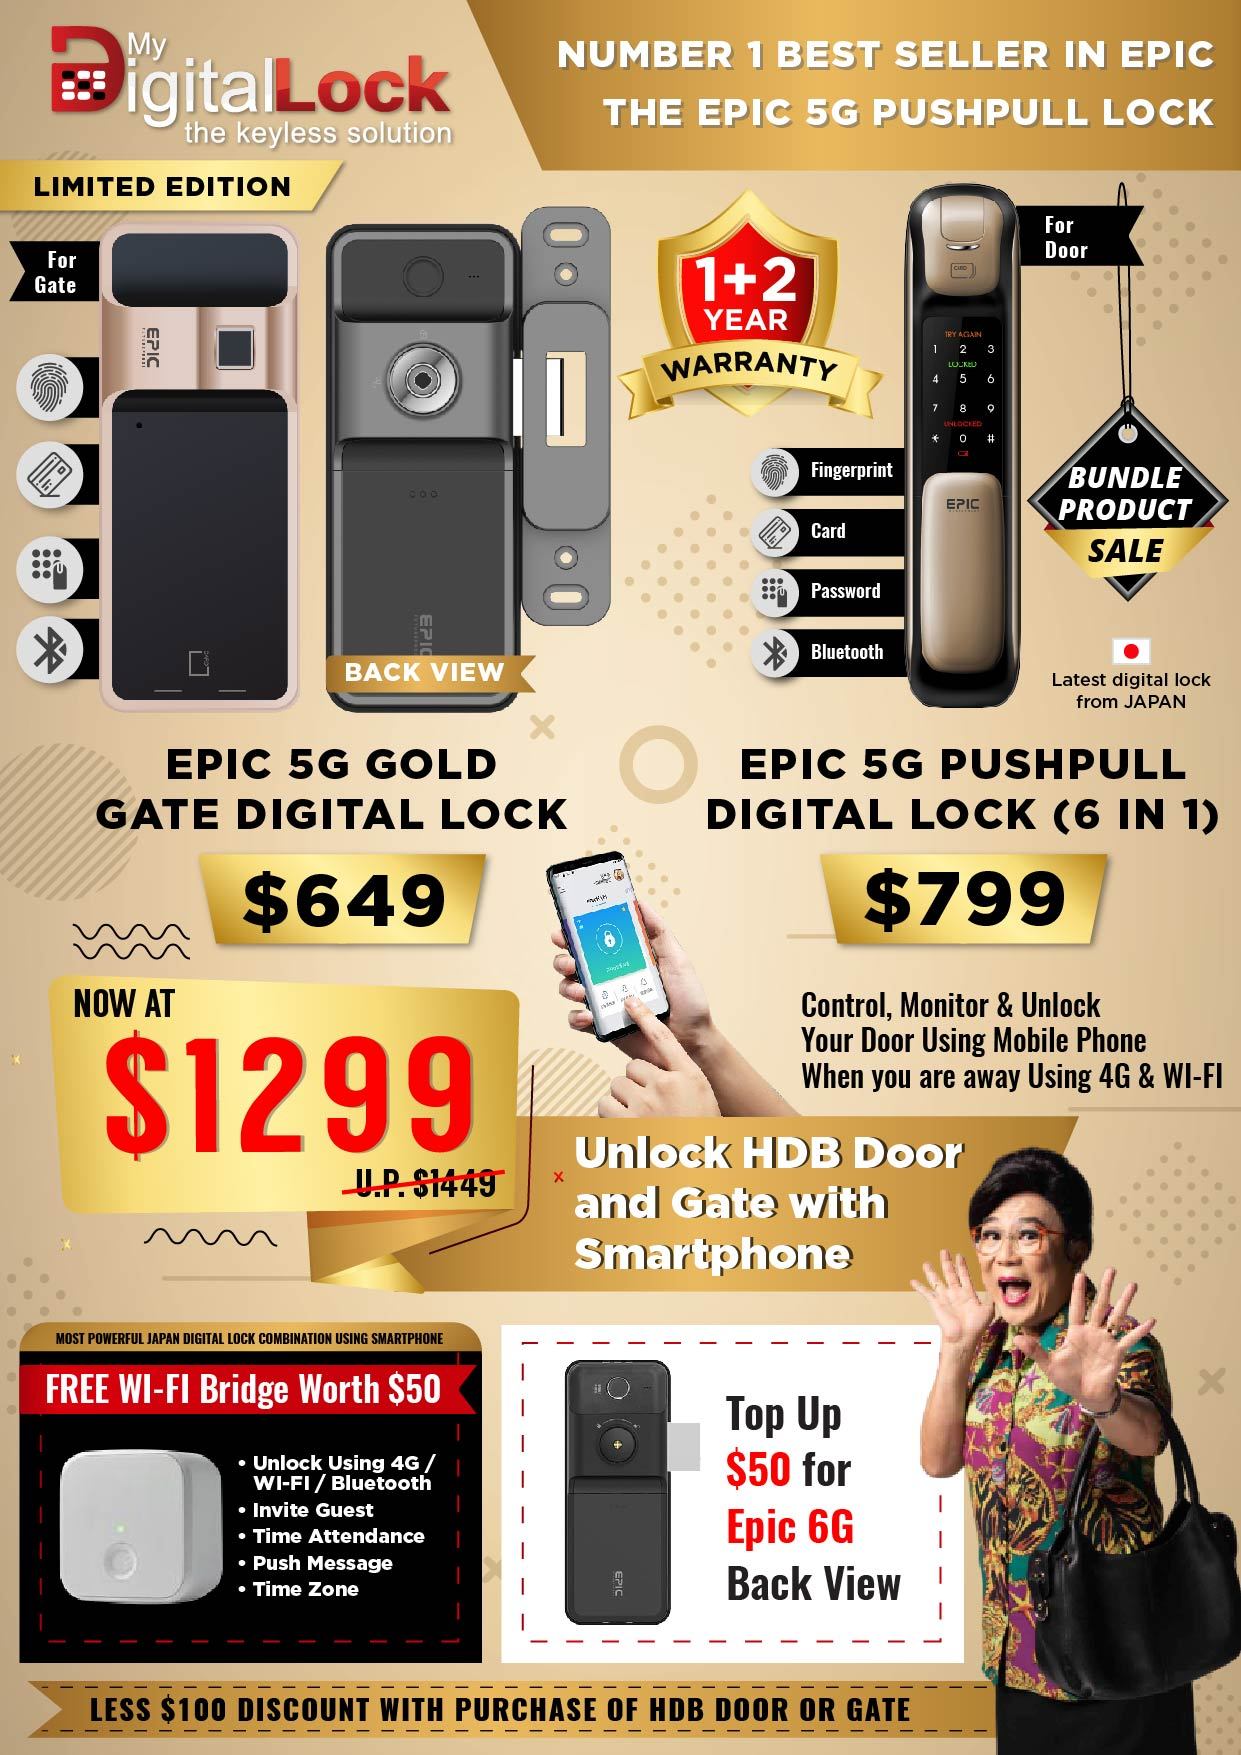 EPIC-5G-Gold-Gate-and-5G-Push-Pull-Digital-Lock-Promotion